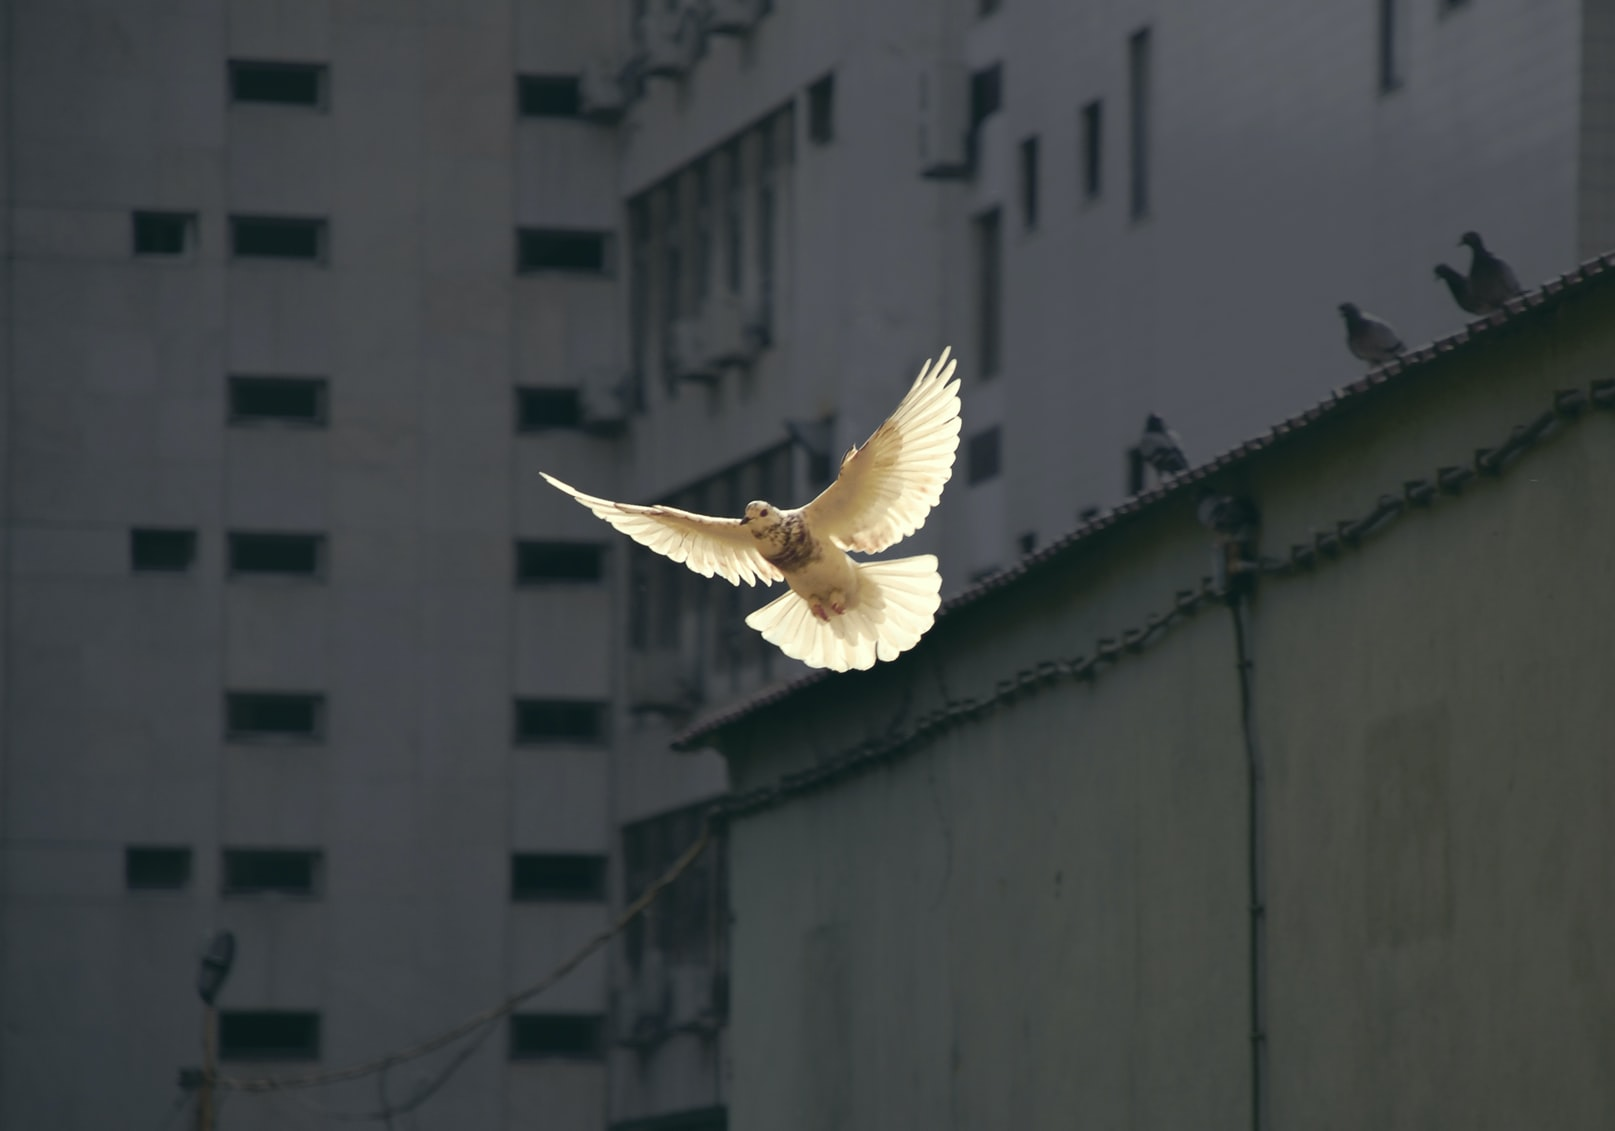 White dove flying near buildings